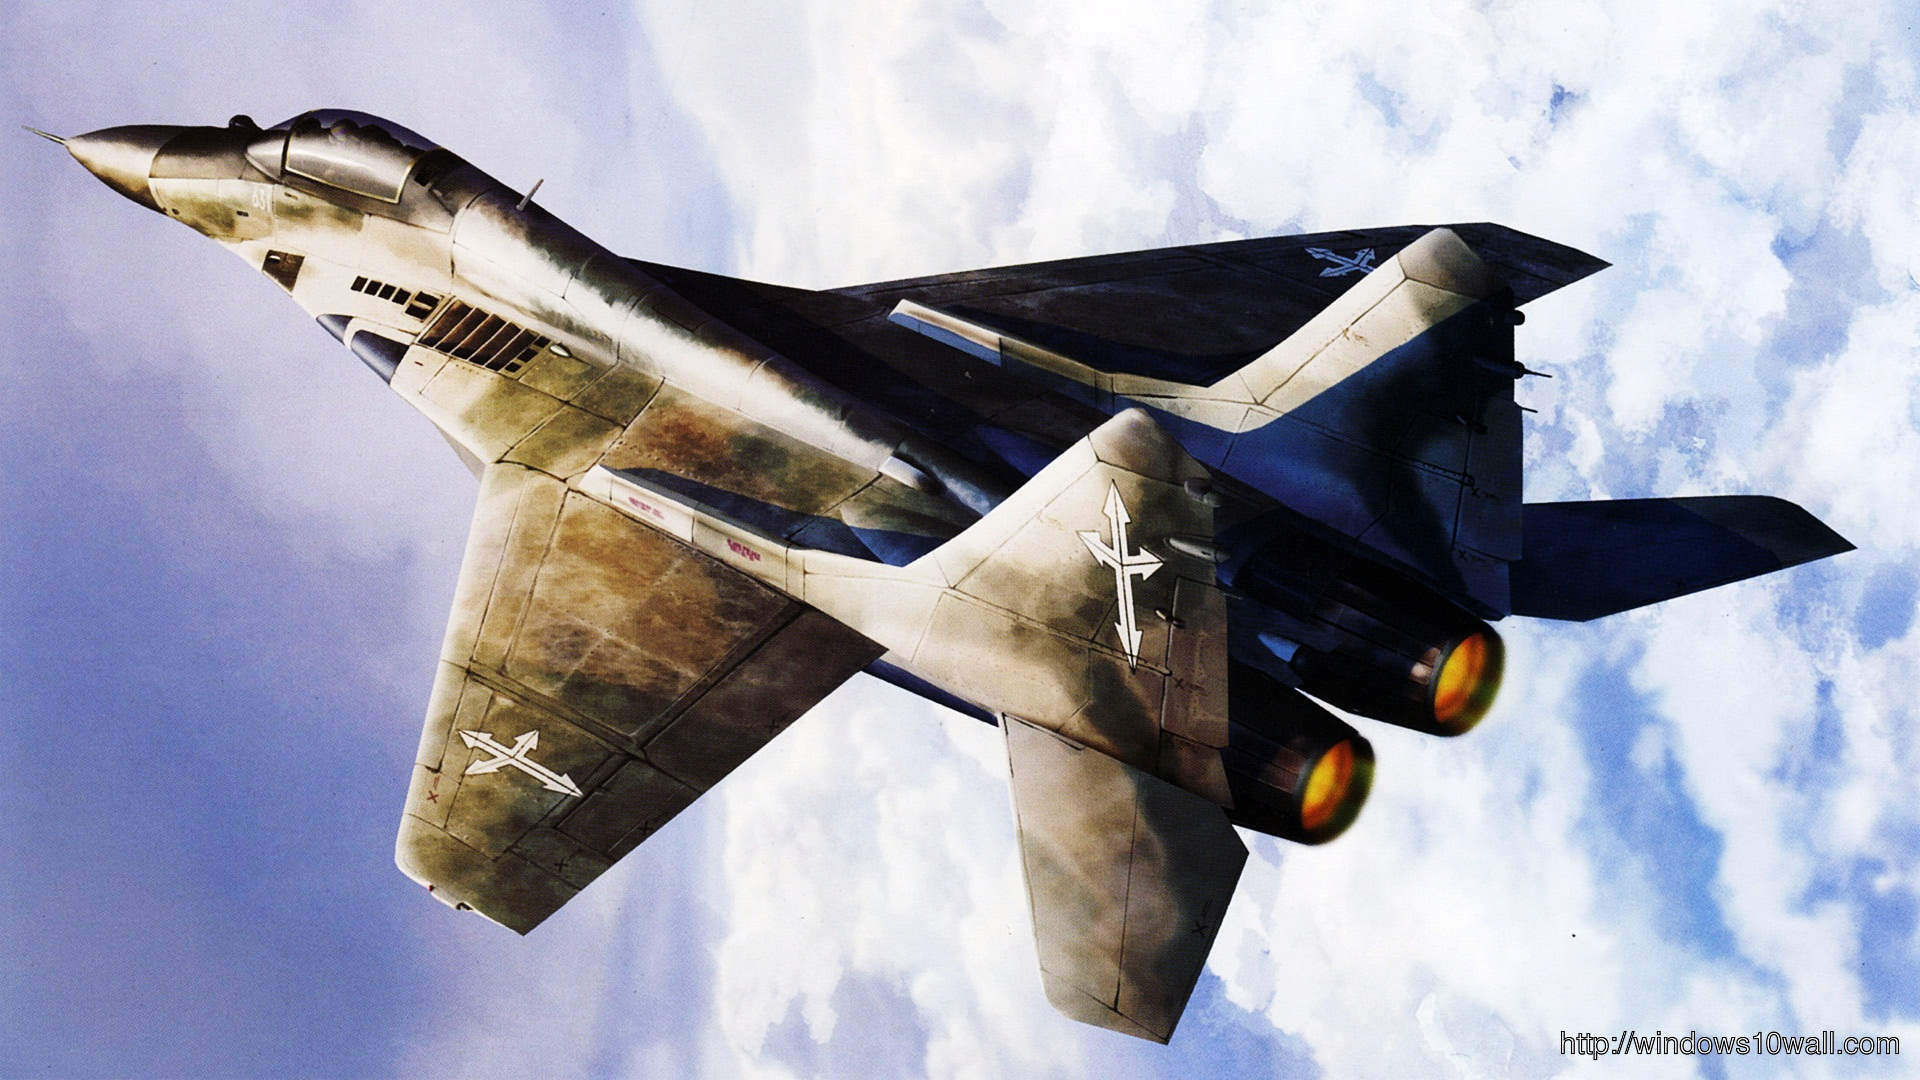 u.s.-air-force-fighter-plane